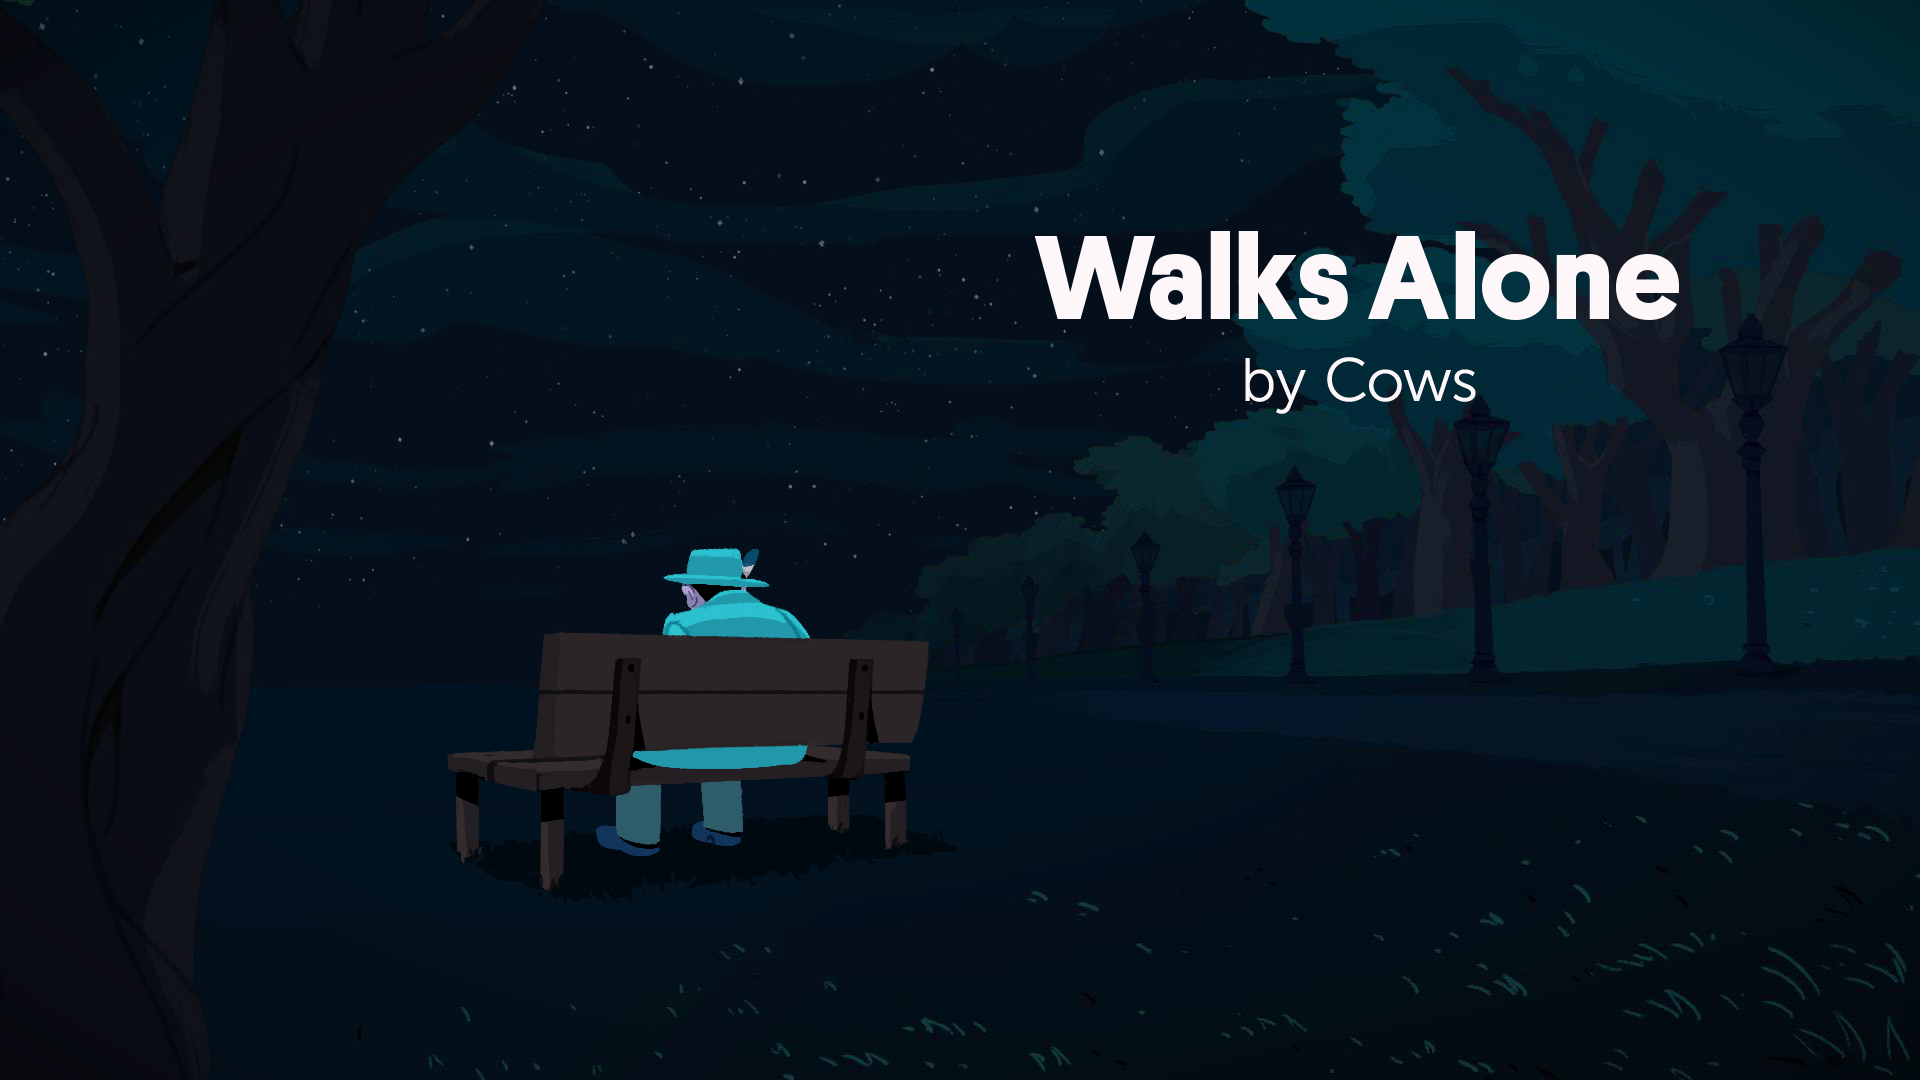 Walks Alone